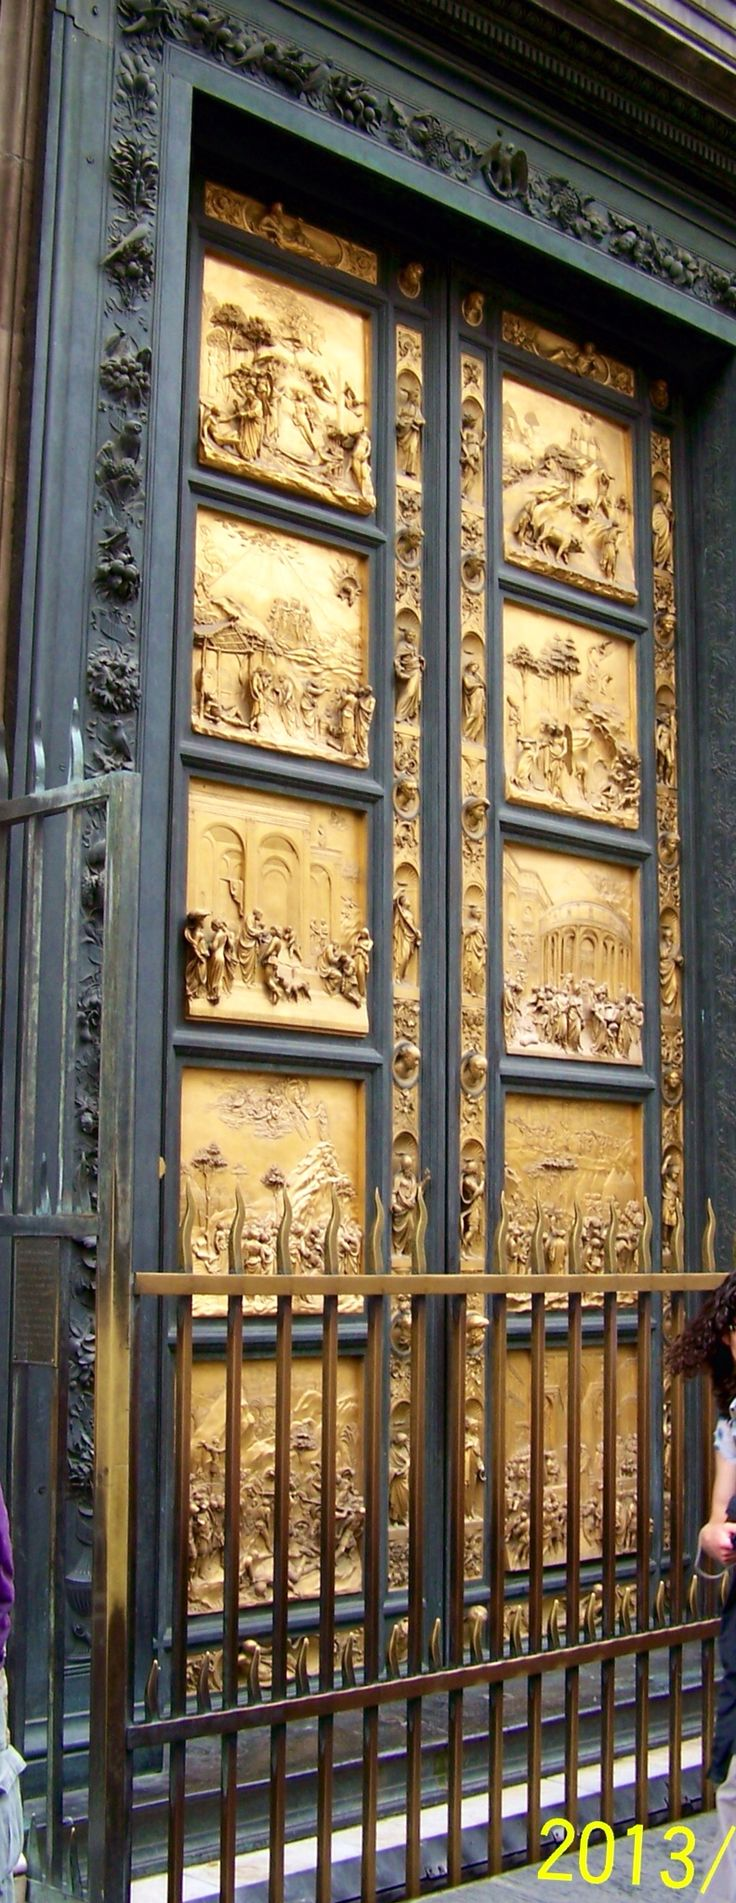 Dubbed Lorenzo Ghiberti's Gates of Paradise by Michelangelo are the bronze doors of the Florence Baptistery also known as St. John's Baptistry, made up of ten panels depicting scenes from the Old Testament.